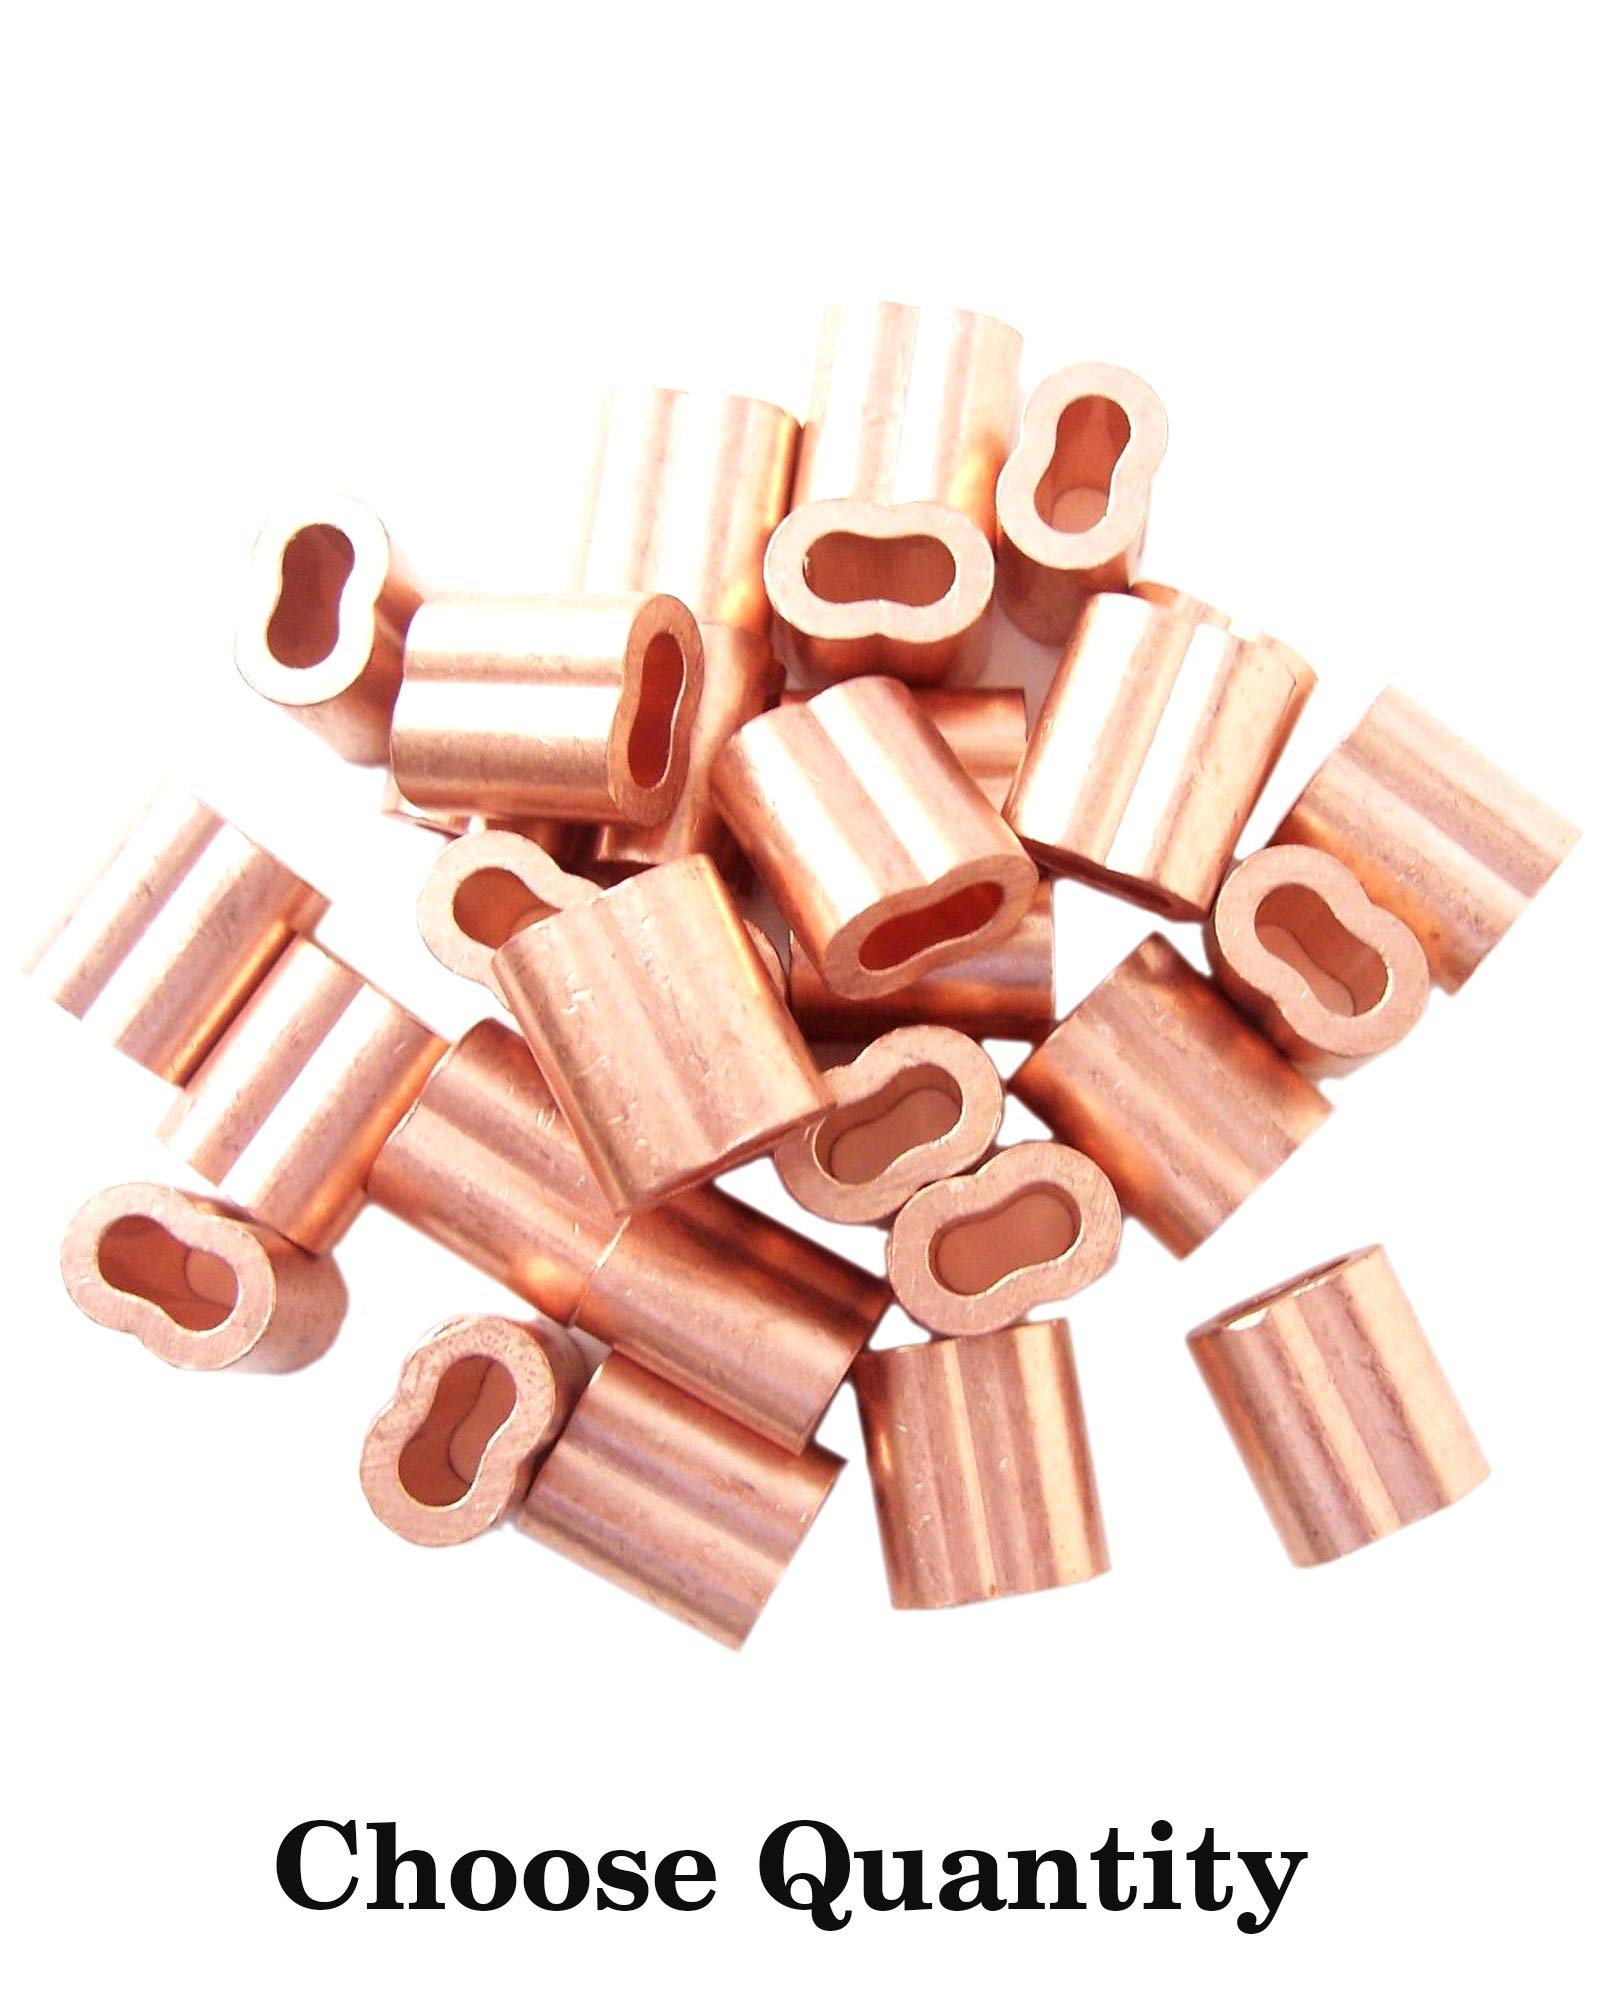 1/16″ Copper Swage Sleeves - Cable Sleeves Cable Crimp Sleeves Crimping Loop Sleeve for 1/16'' Diameter Wire Rope and Cable Wire Rope Crimp Sleeves Loop Sleeve Cable Crimp (200)